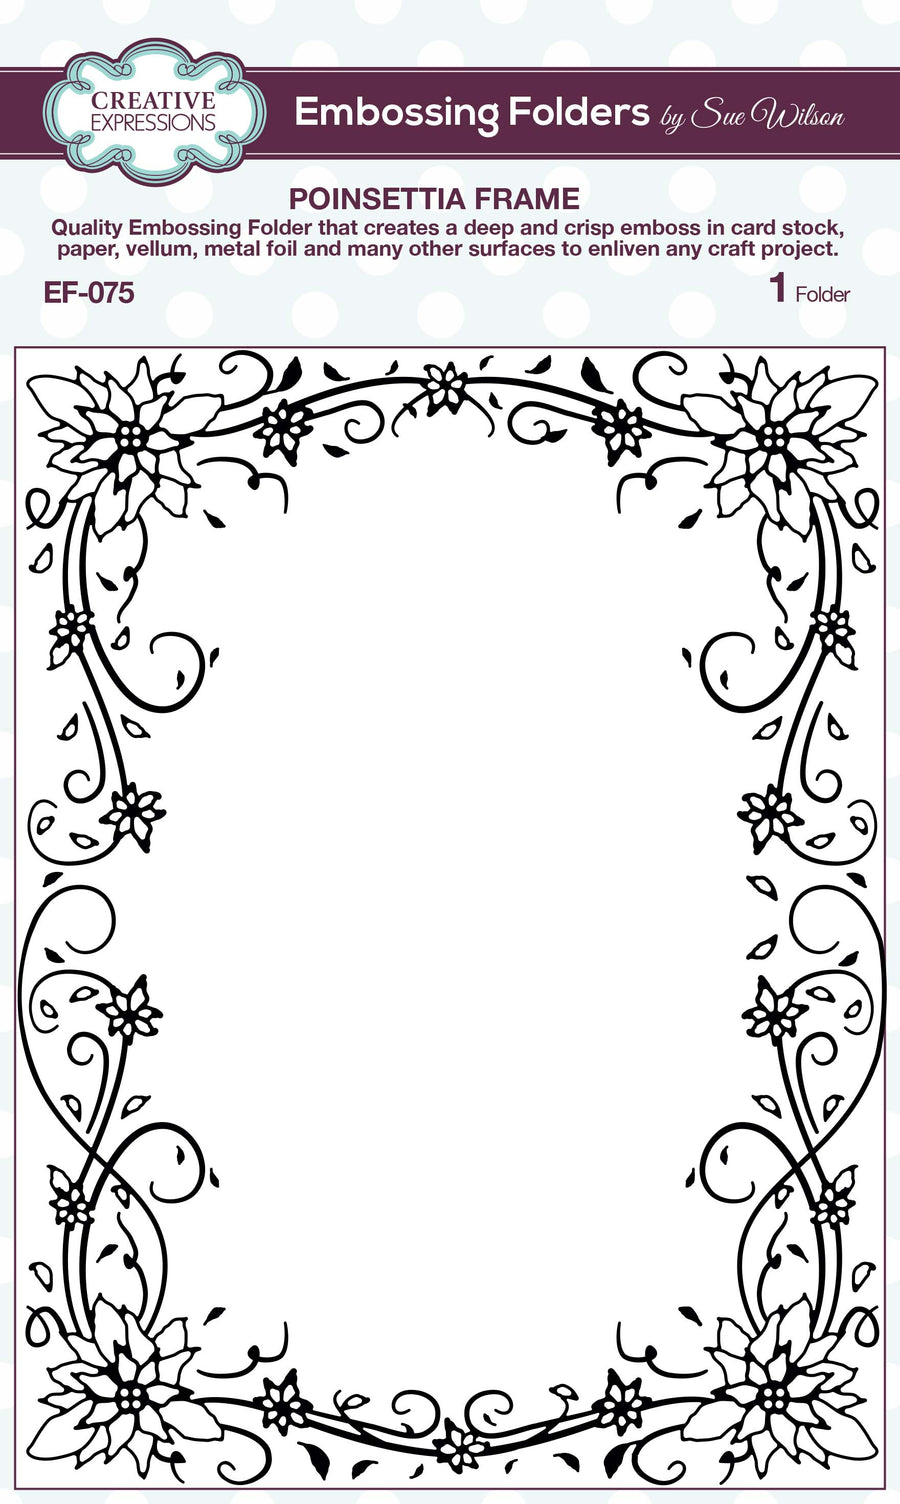 Creative Expressions Embossing Folder - Poinsettia Frame